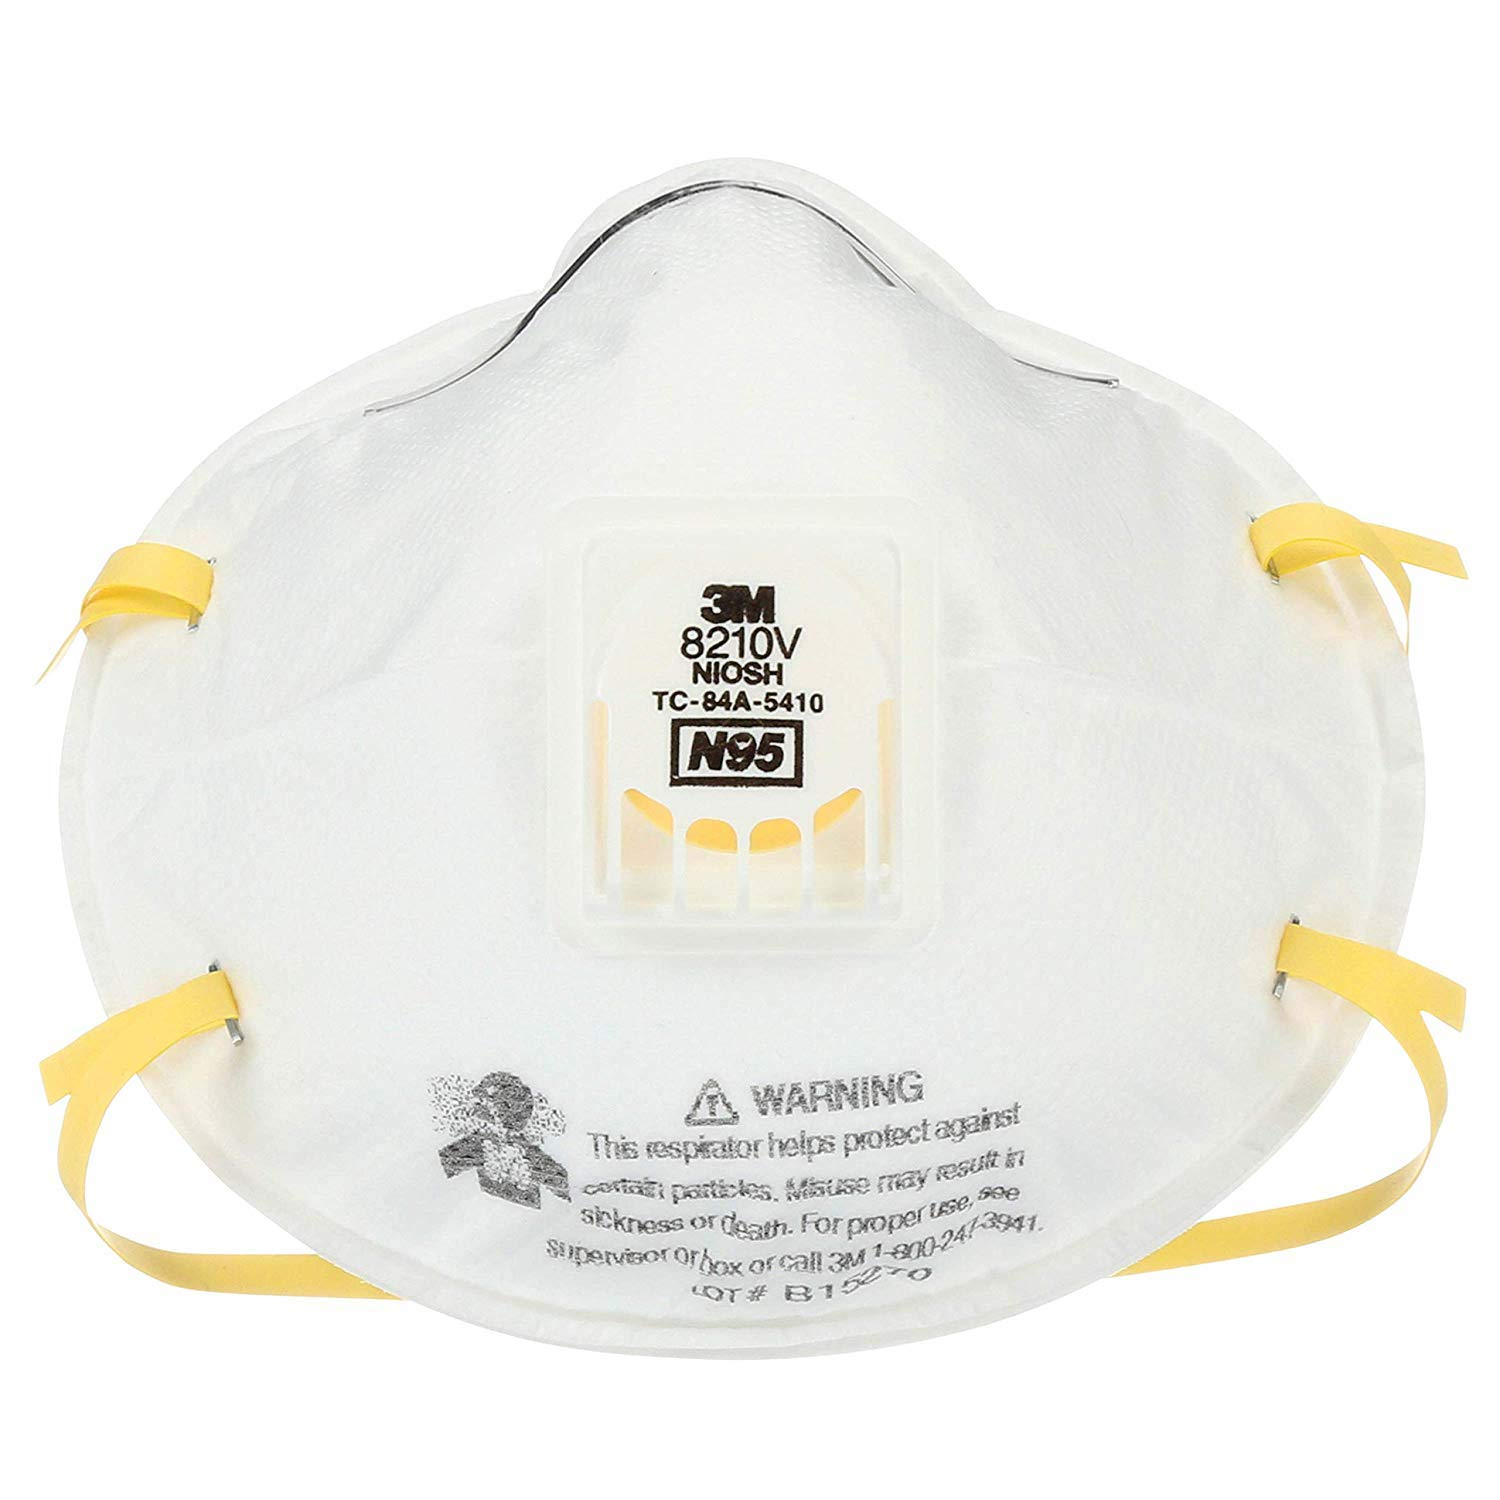 3M 8210V Particulate Respirator, N95 Respiratory Protection (Case of 40)